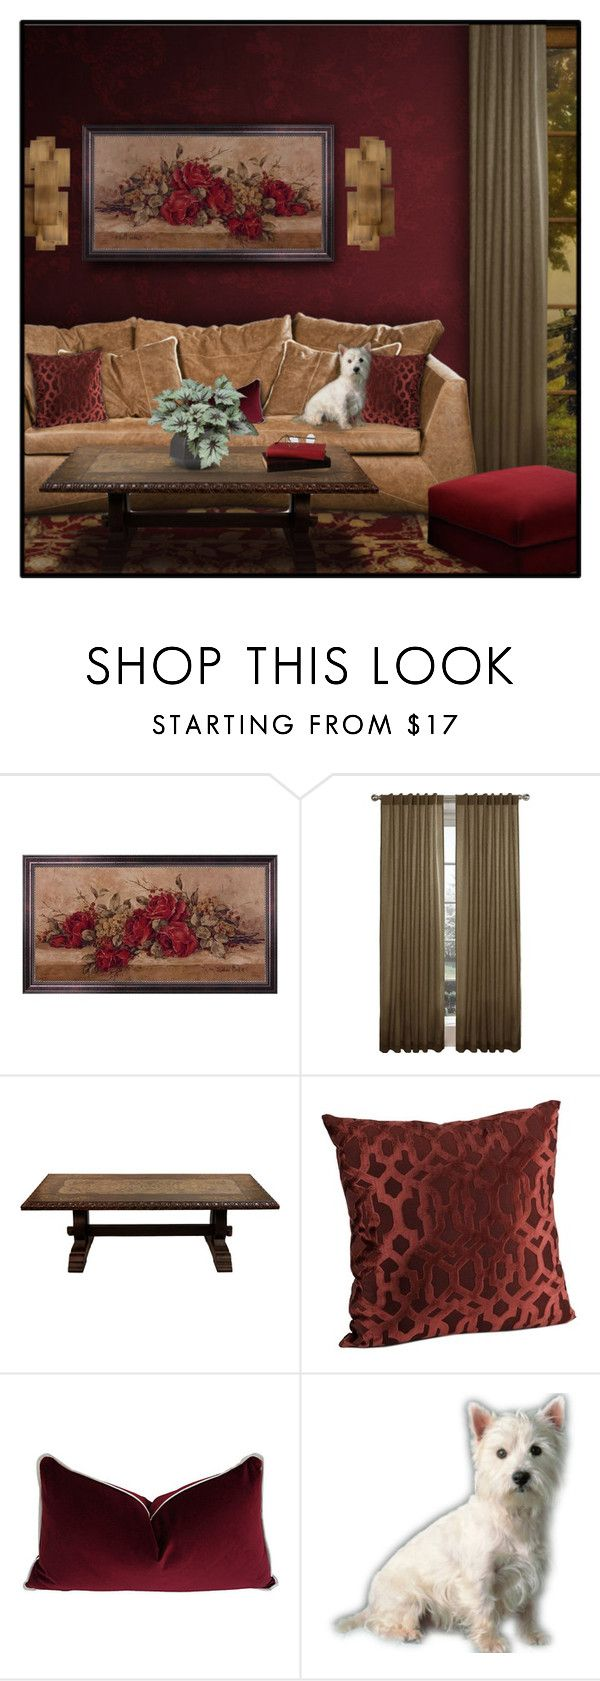 """""""3/5 RED + BROWN"""" by signaturenails-dstanley ❤ liked on Polyvore featuring interior, interiors, interior design, home, home decor, interior decorating and Maytex"""